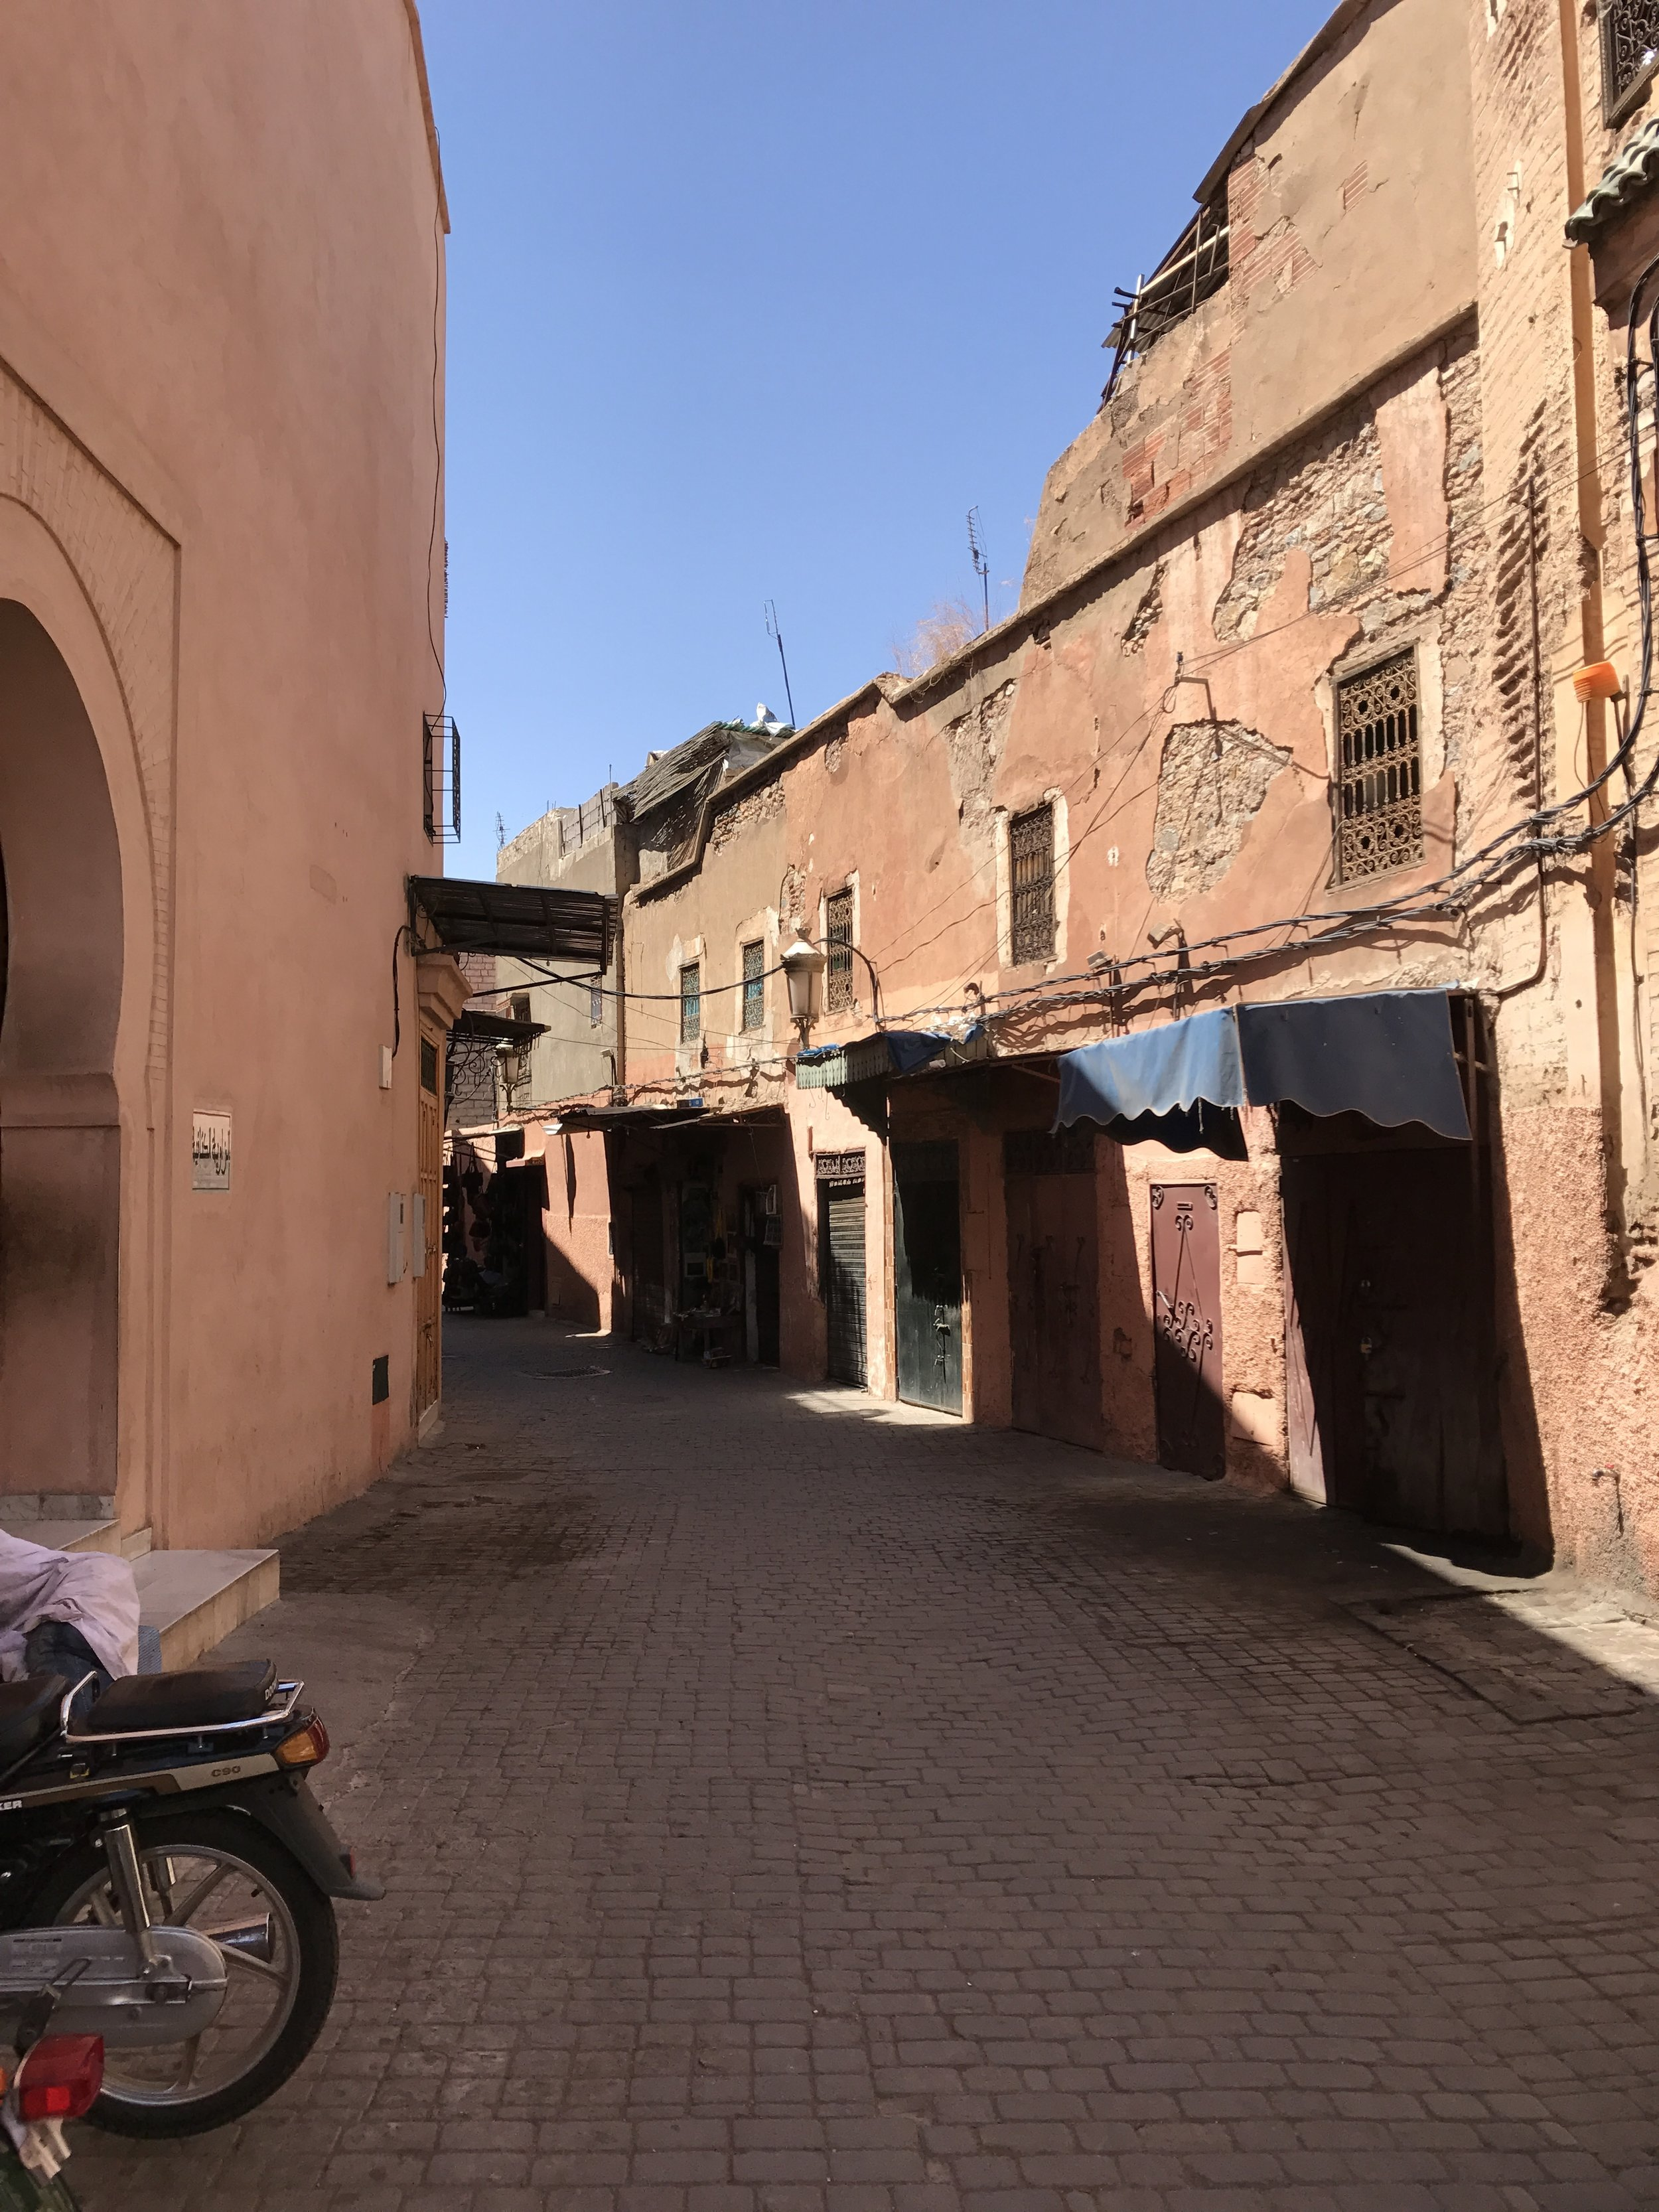 The real Marrakesh.